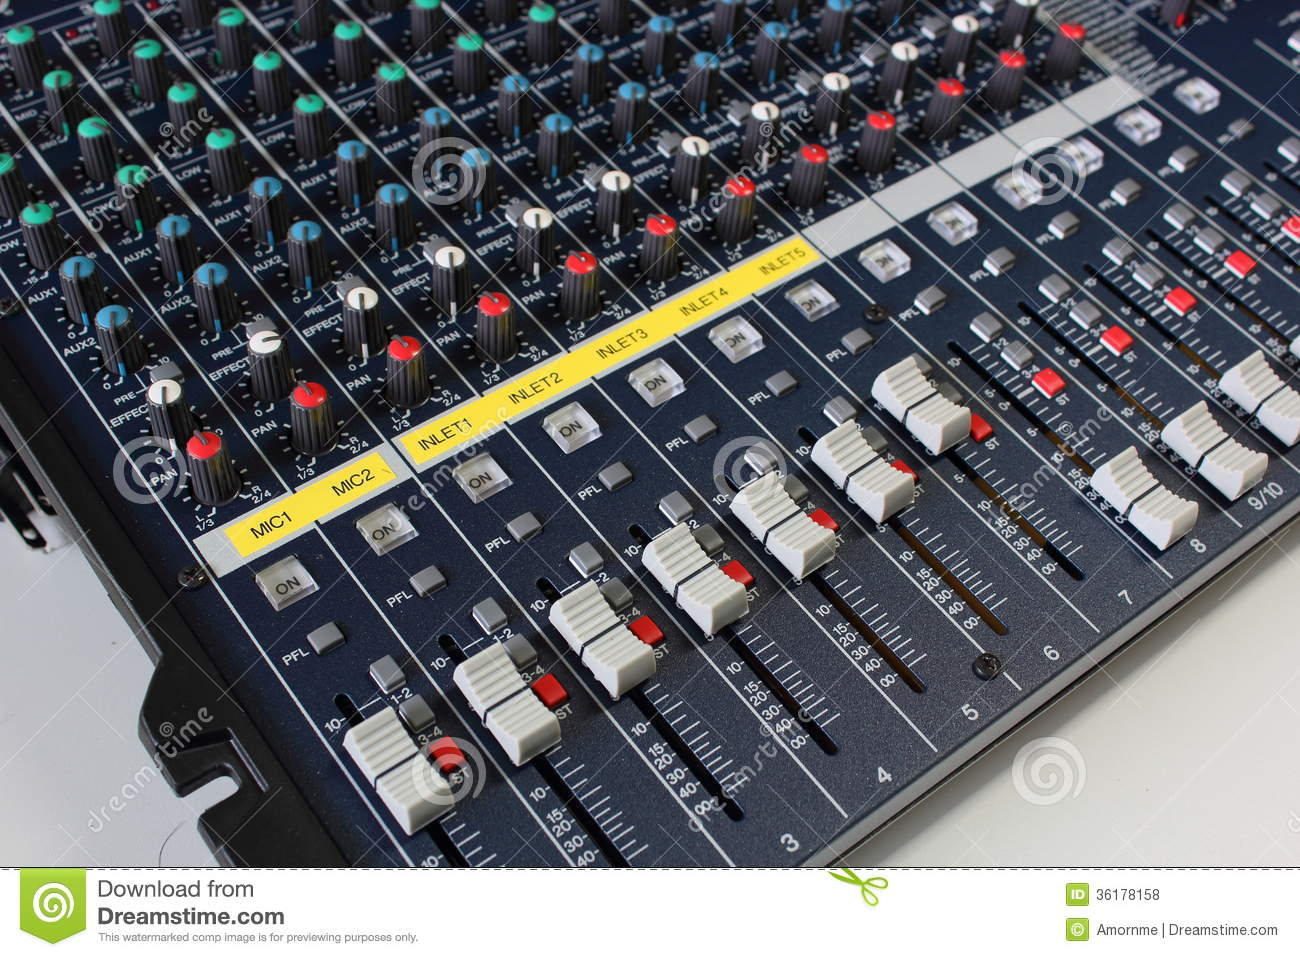 Free images: desk, technology, controller, analog, amplifier.